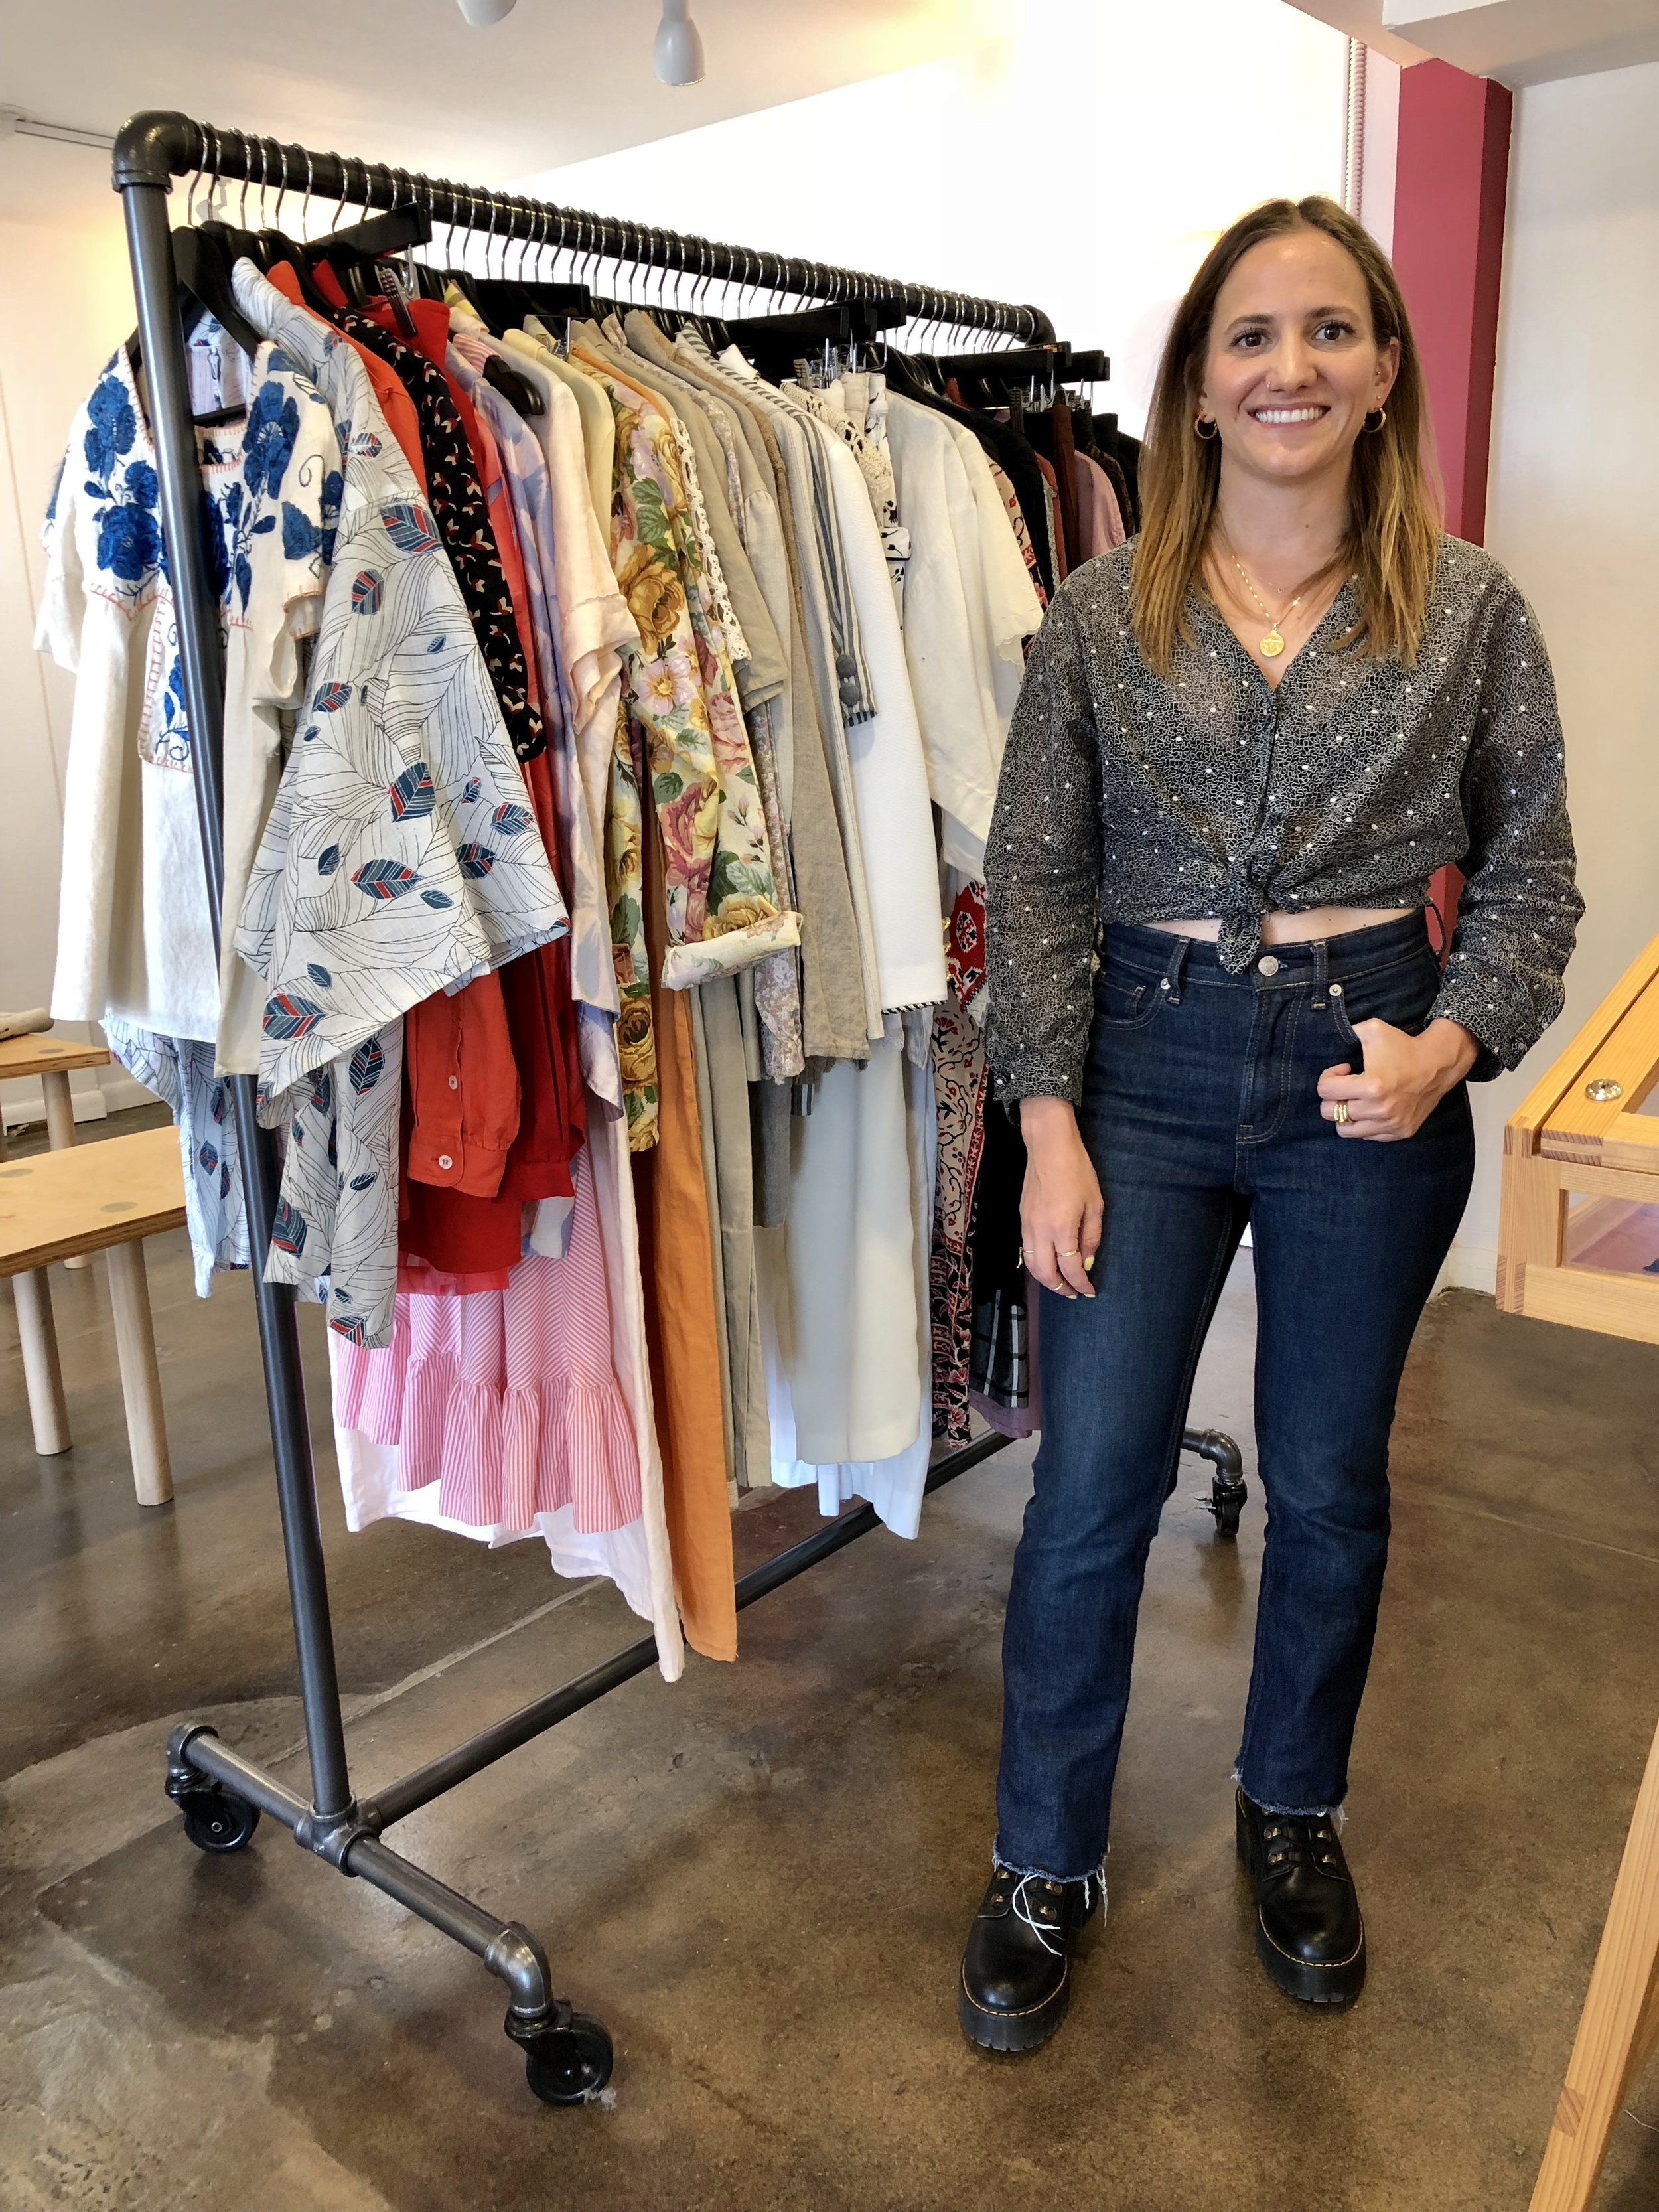 April Onebane with the collection of clothing she has curated for her business, Pieceology Vintage